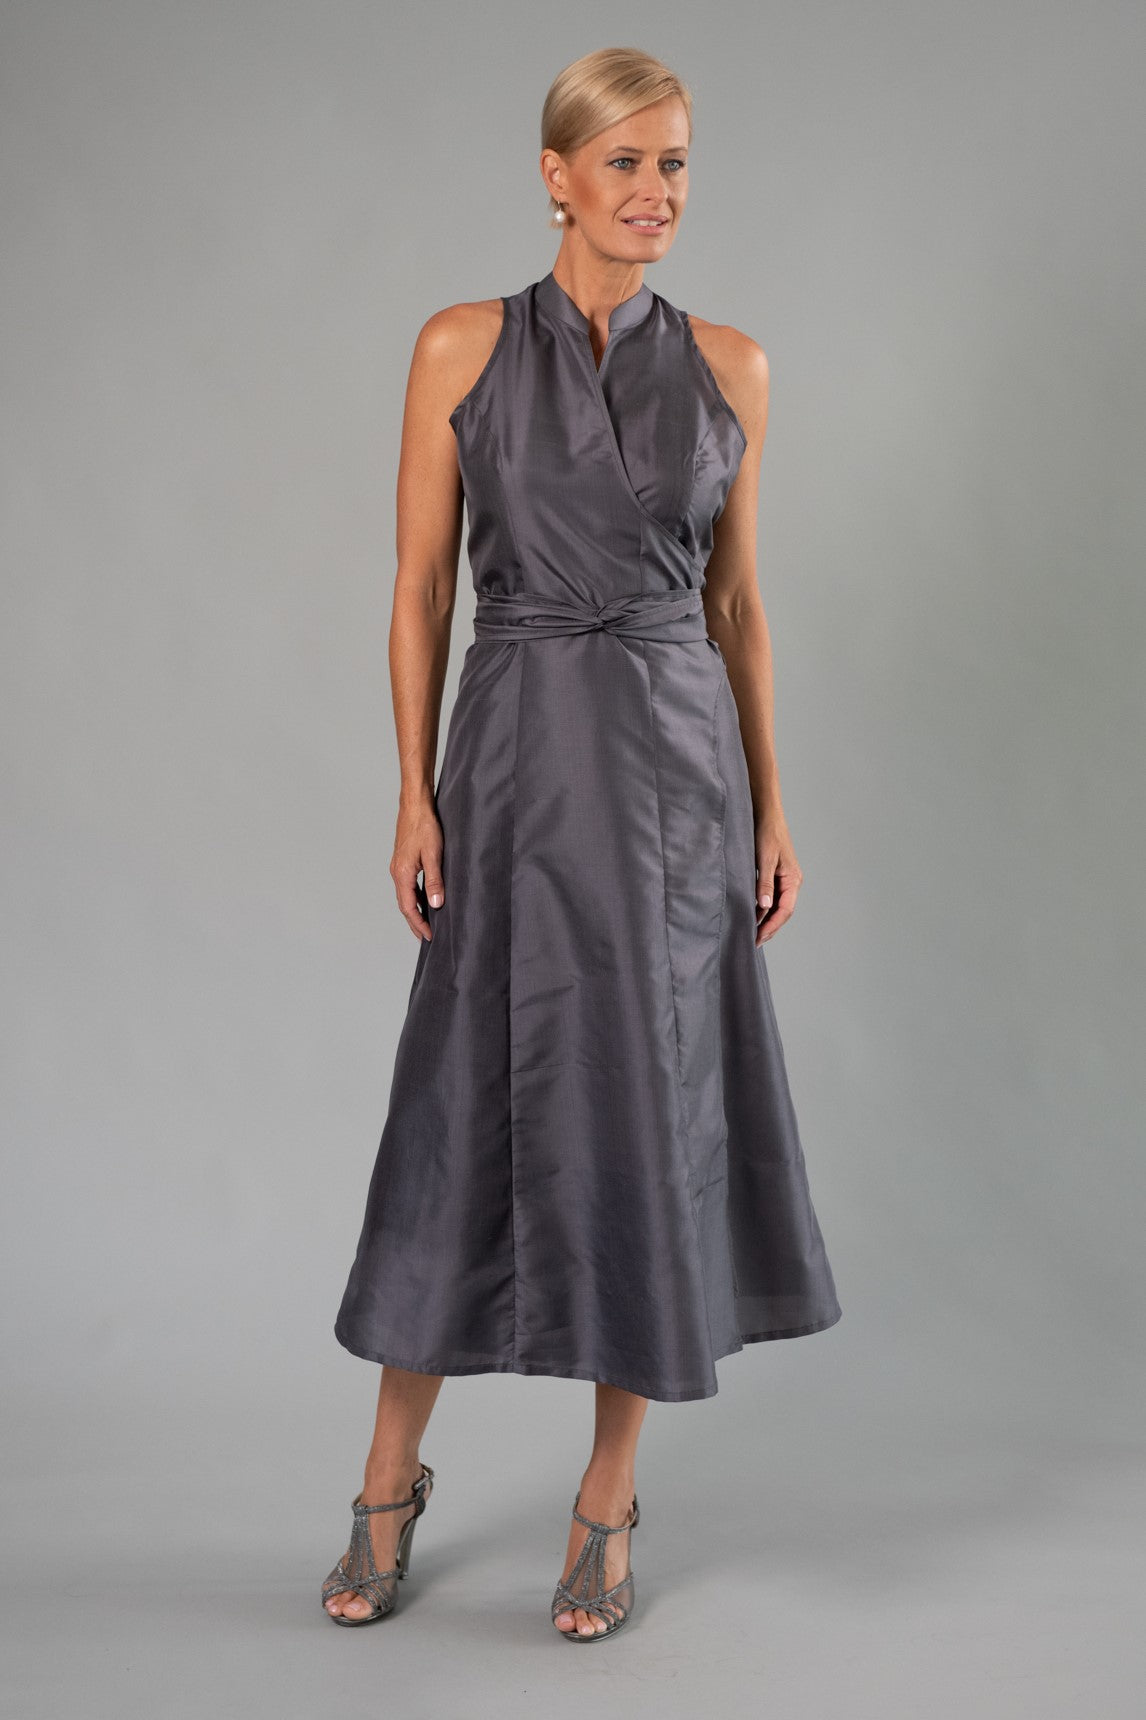 Wrap Dress - Gunmetal for the Mother of the Bride / Groom